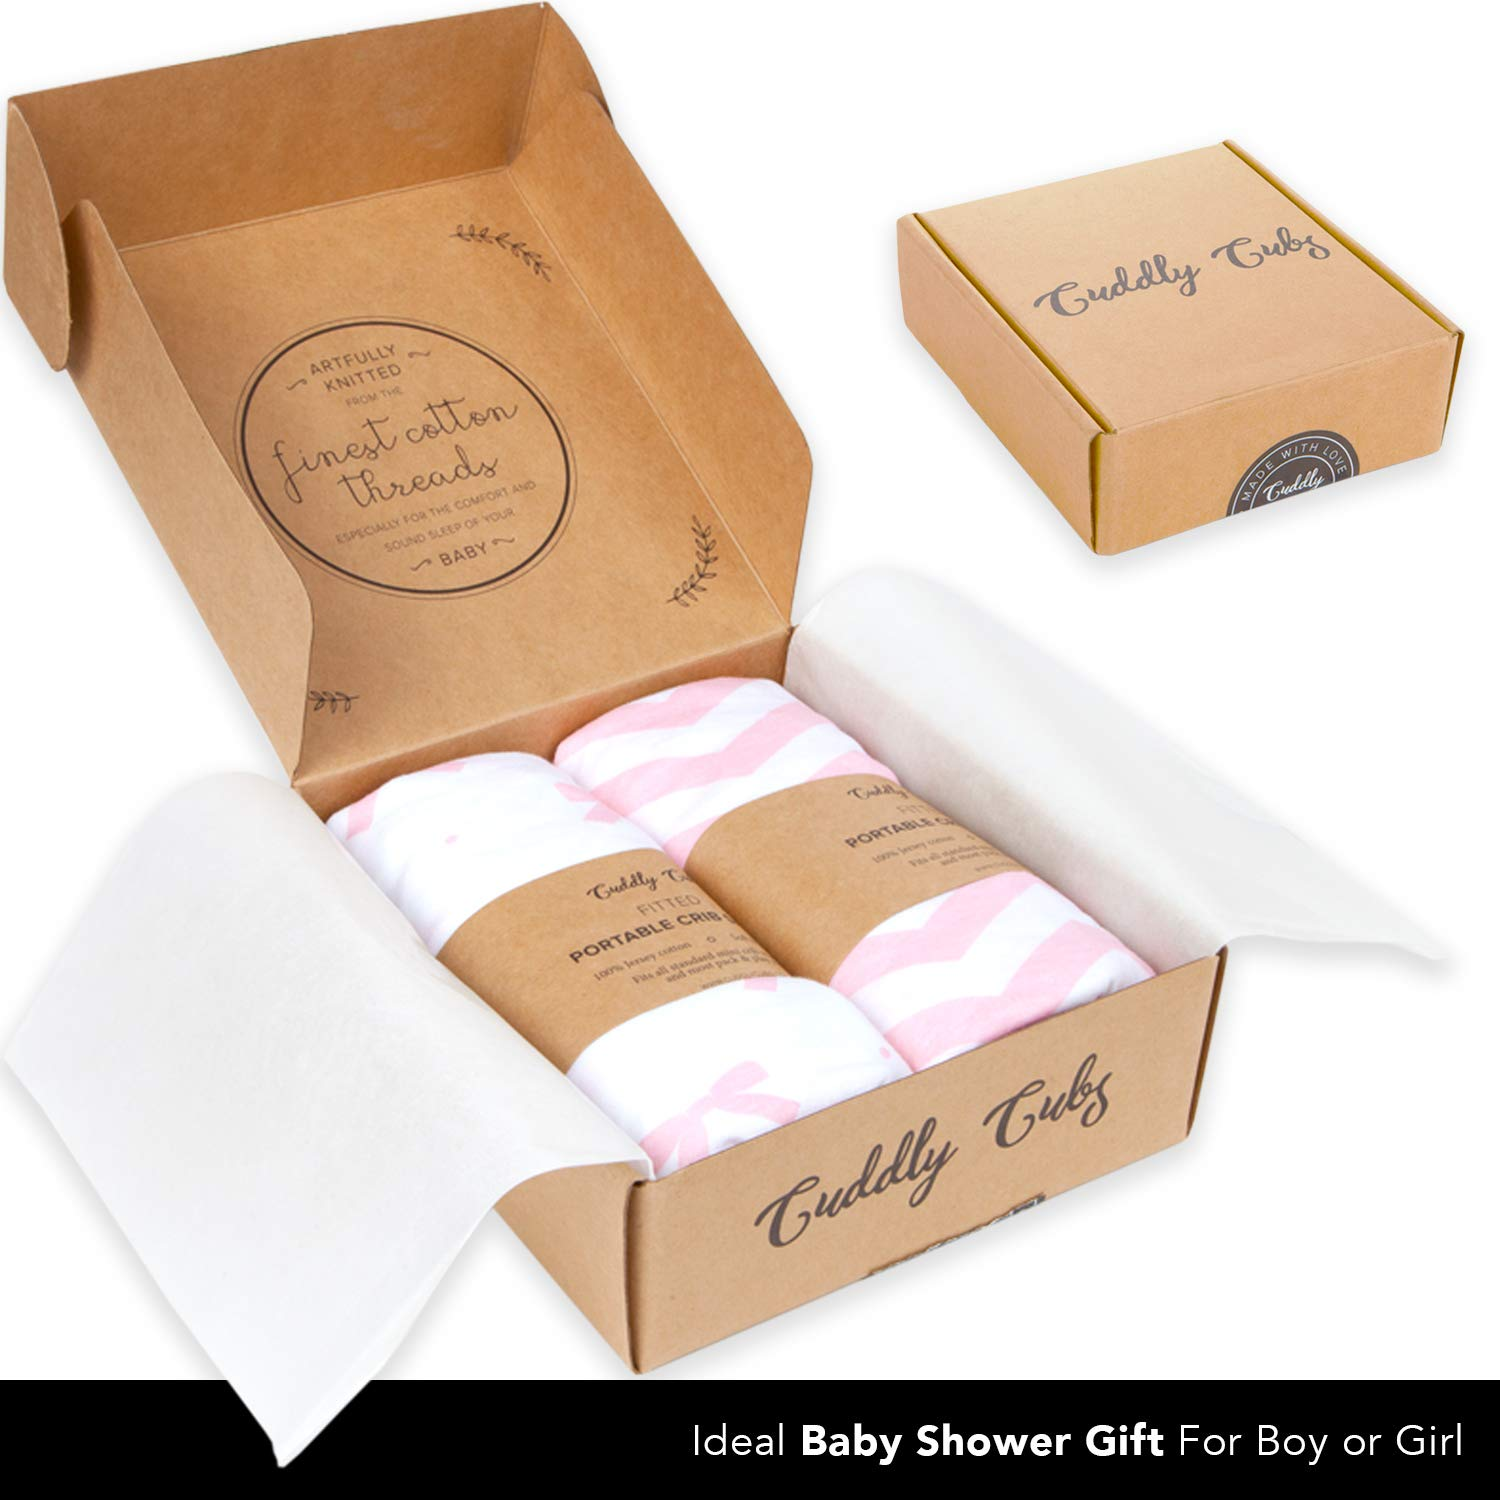 Cuddly Cubs Pack n Play Sheets | 2 Pack Playard Sheet for Baby Girl and Boy | 100% Jersey Cotton Unisex Mini Portable Crib Sheets | Bows and Chevron in Grey and Pink | Fits Graco, Joovy & Others by Cuddly Cubs (Image #4)